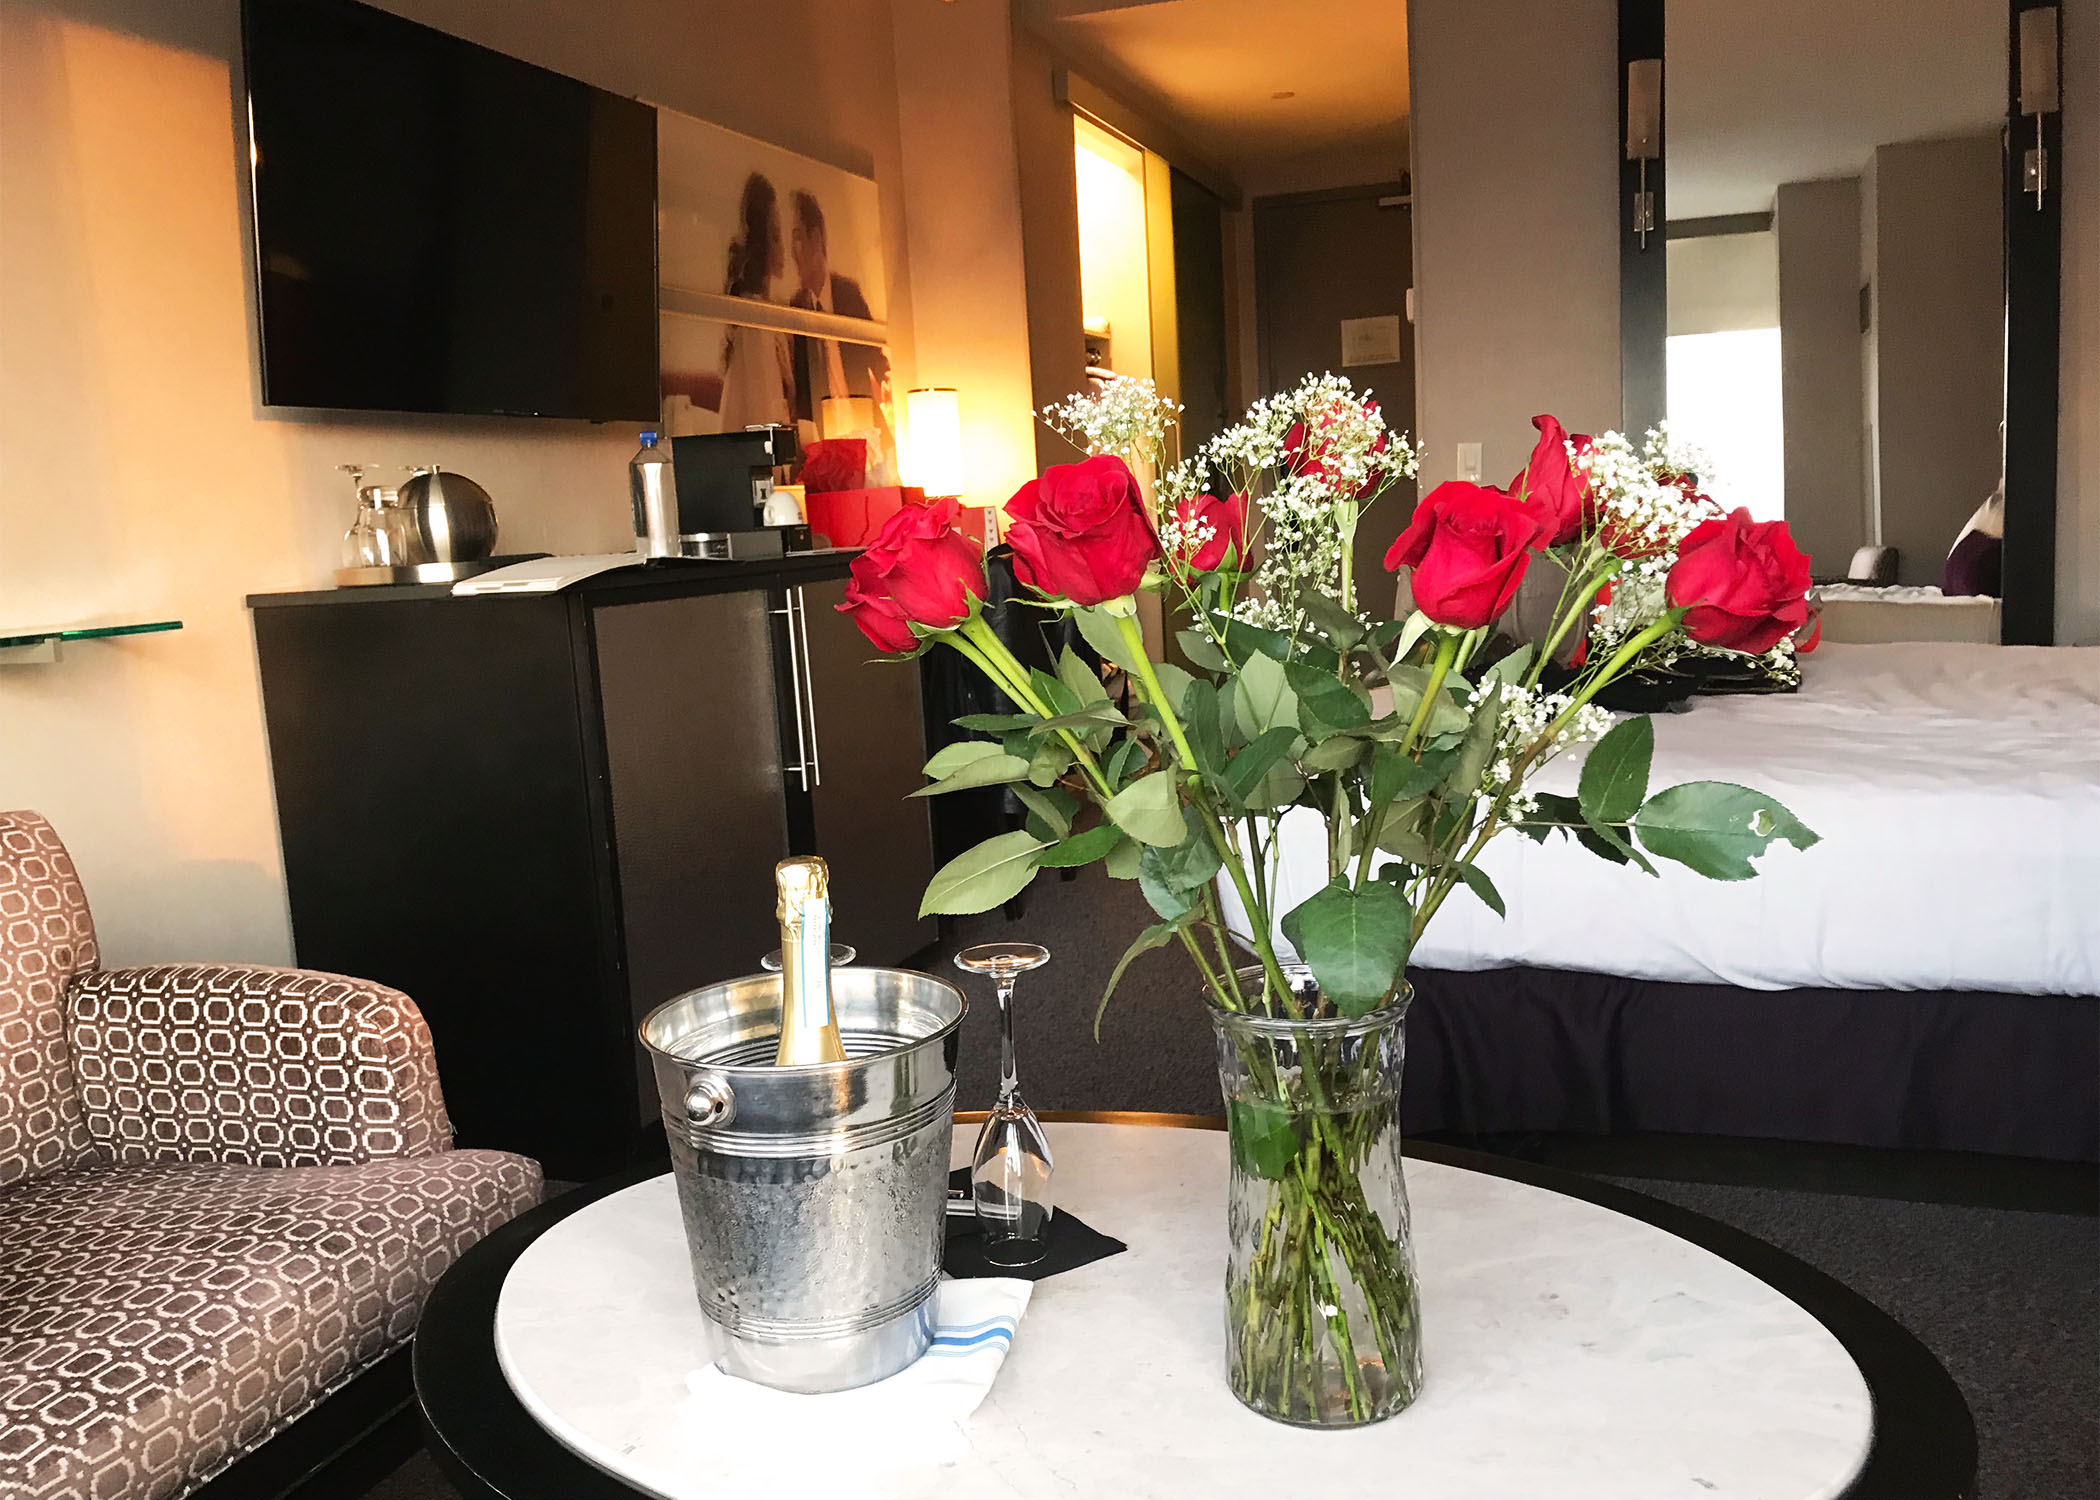 Valentine's Day at The Gansevoort Hotel